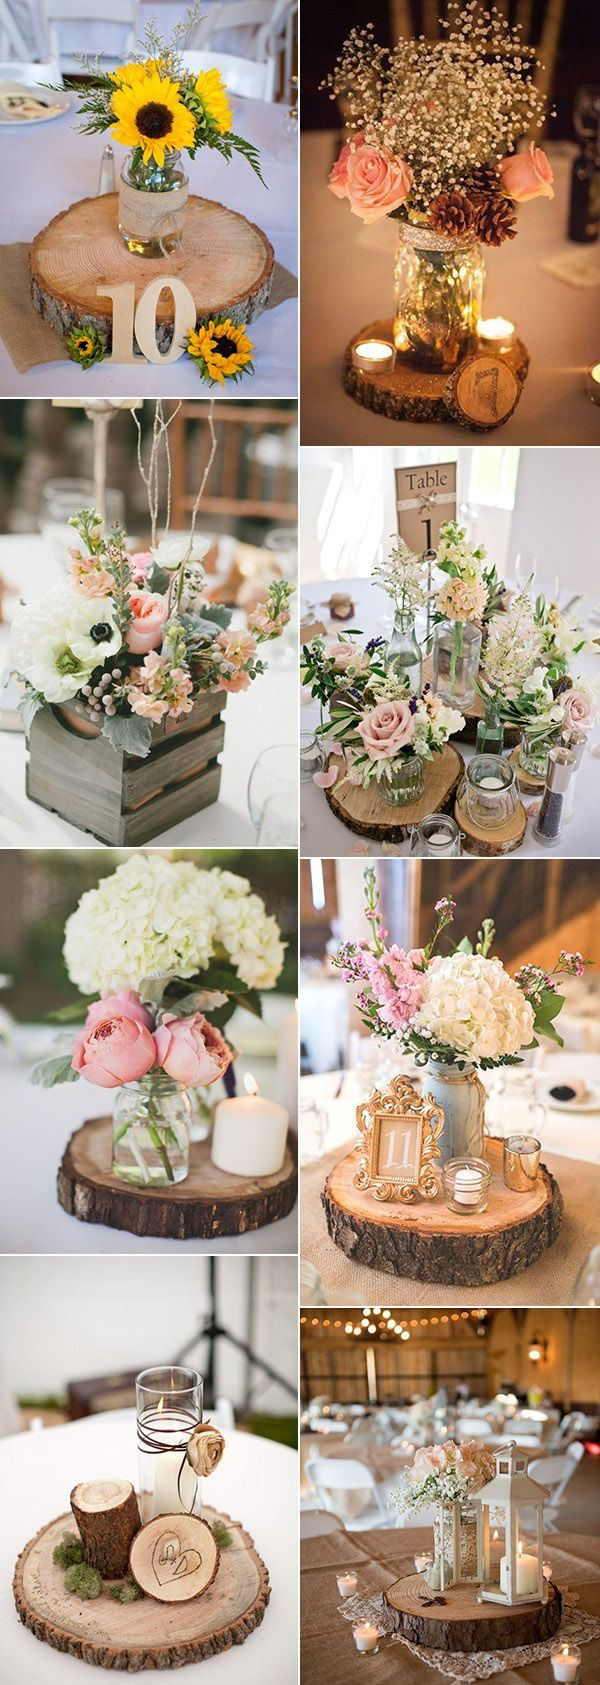 2017 wedding trends 36 perfect rustic wood themed wedding ideas 2017 wedding trends 36 perfect rustic wood themed wedding ideas pinterest wood themed wedding wedding centerpieces and themed weddings junglespirit Image collections